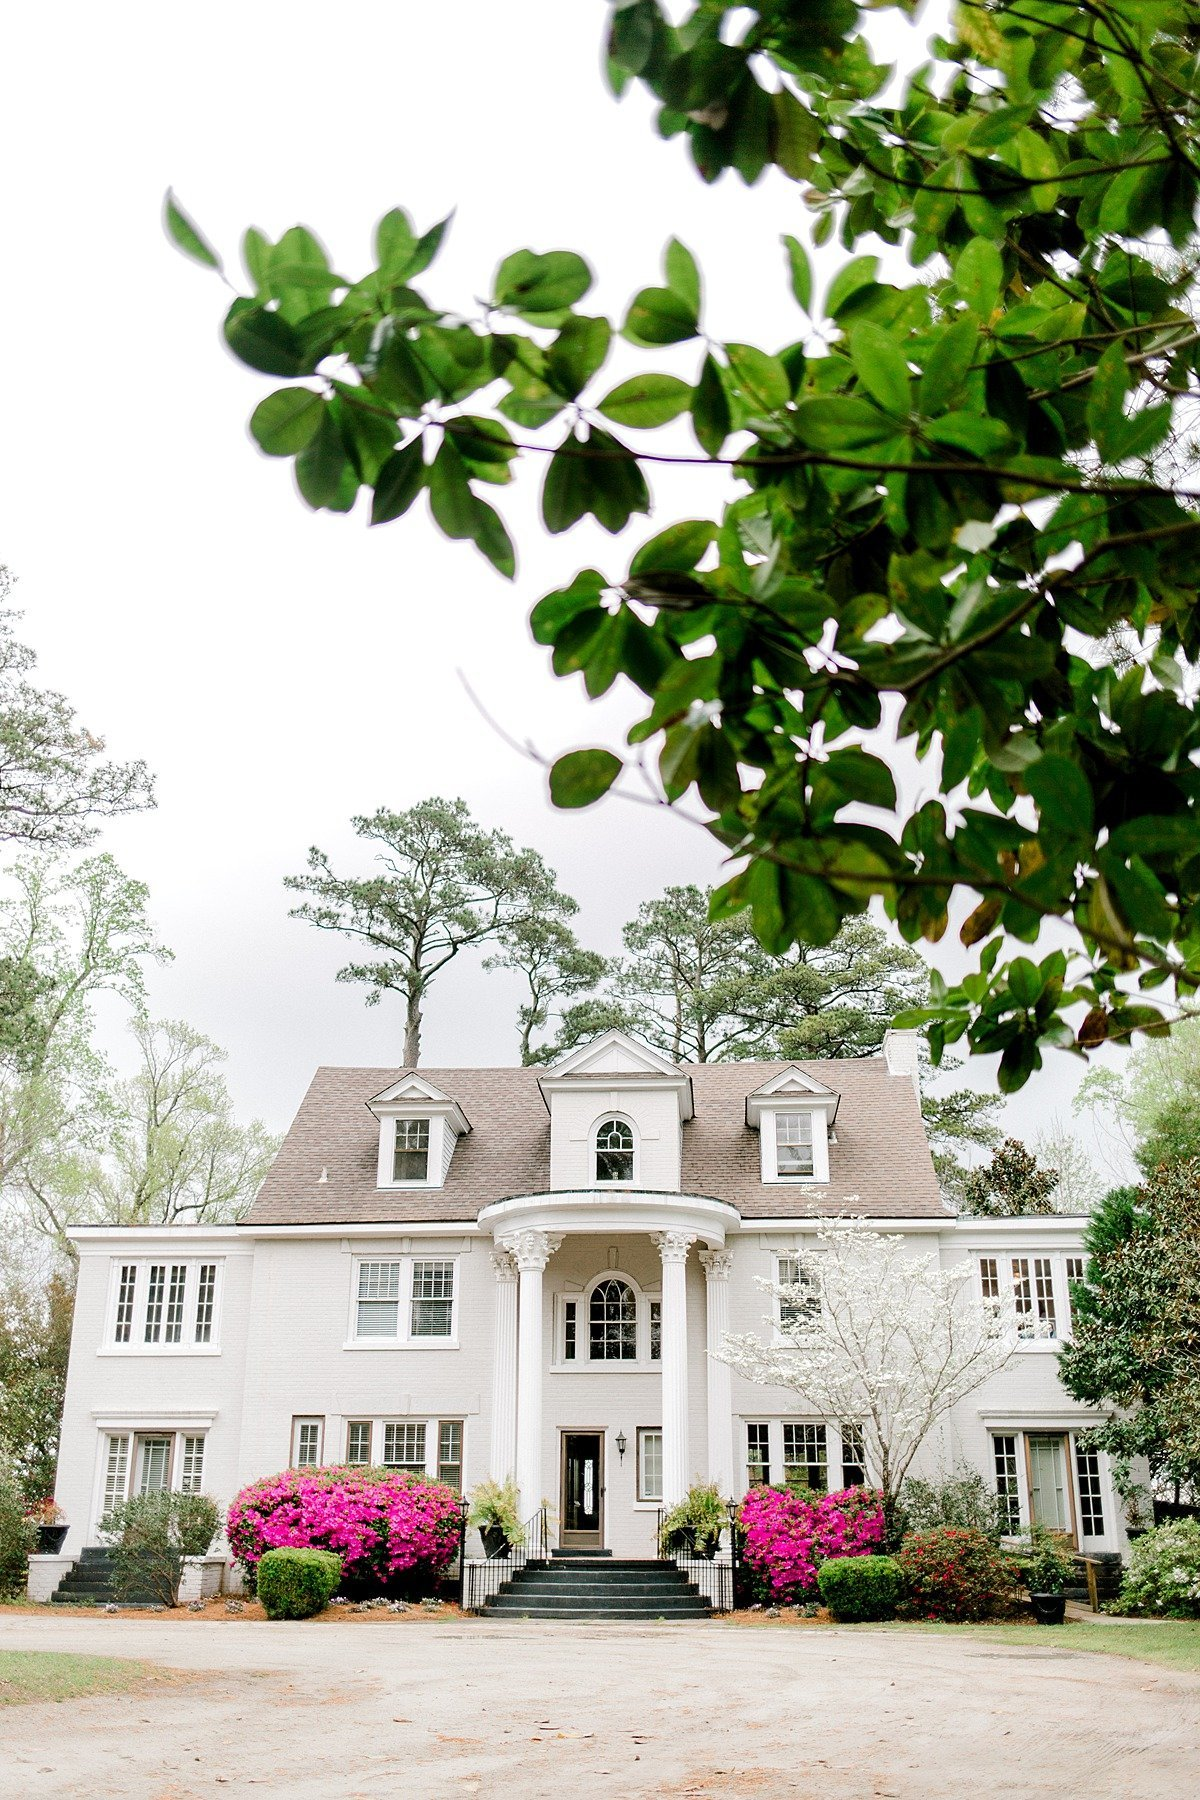 Elegant Spring Pink Abilena Plantation Indoor Rainy Wedding New Bern NC Andrew & Tianna Photography-6